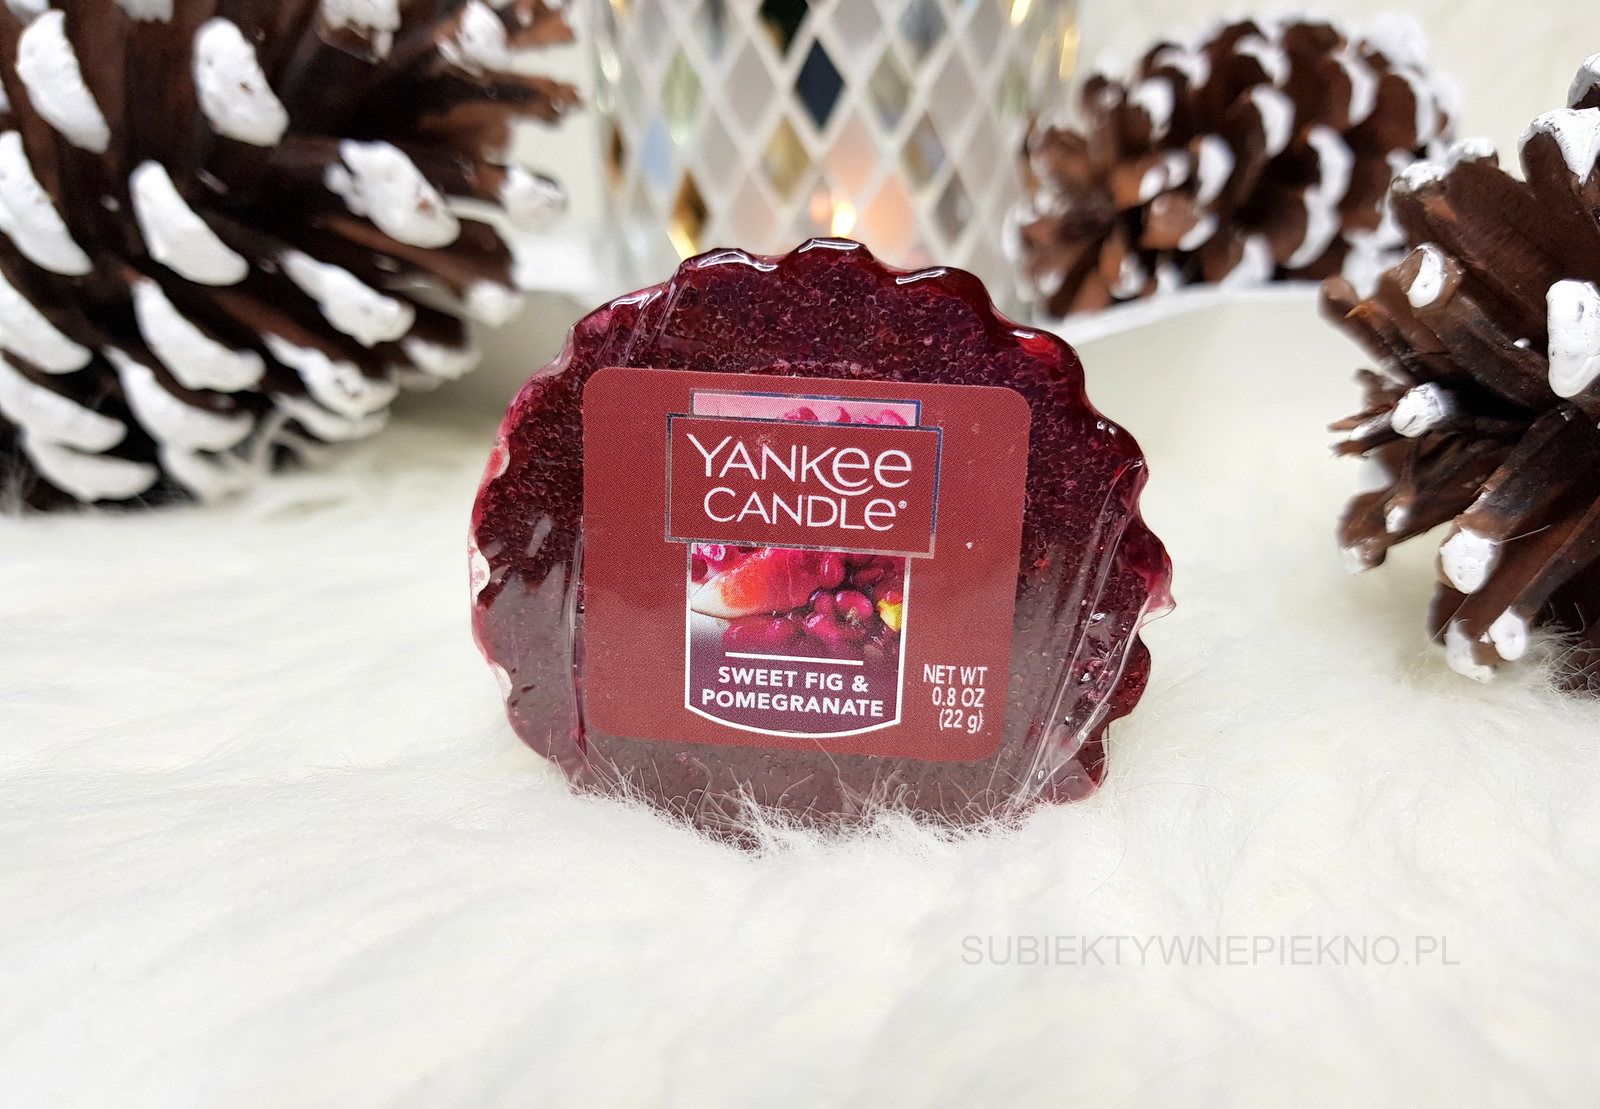 Wosk zapachowy Sweet Fig & Pomegranate Yankee Candle - recenzja, opinie, blog.